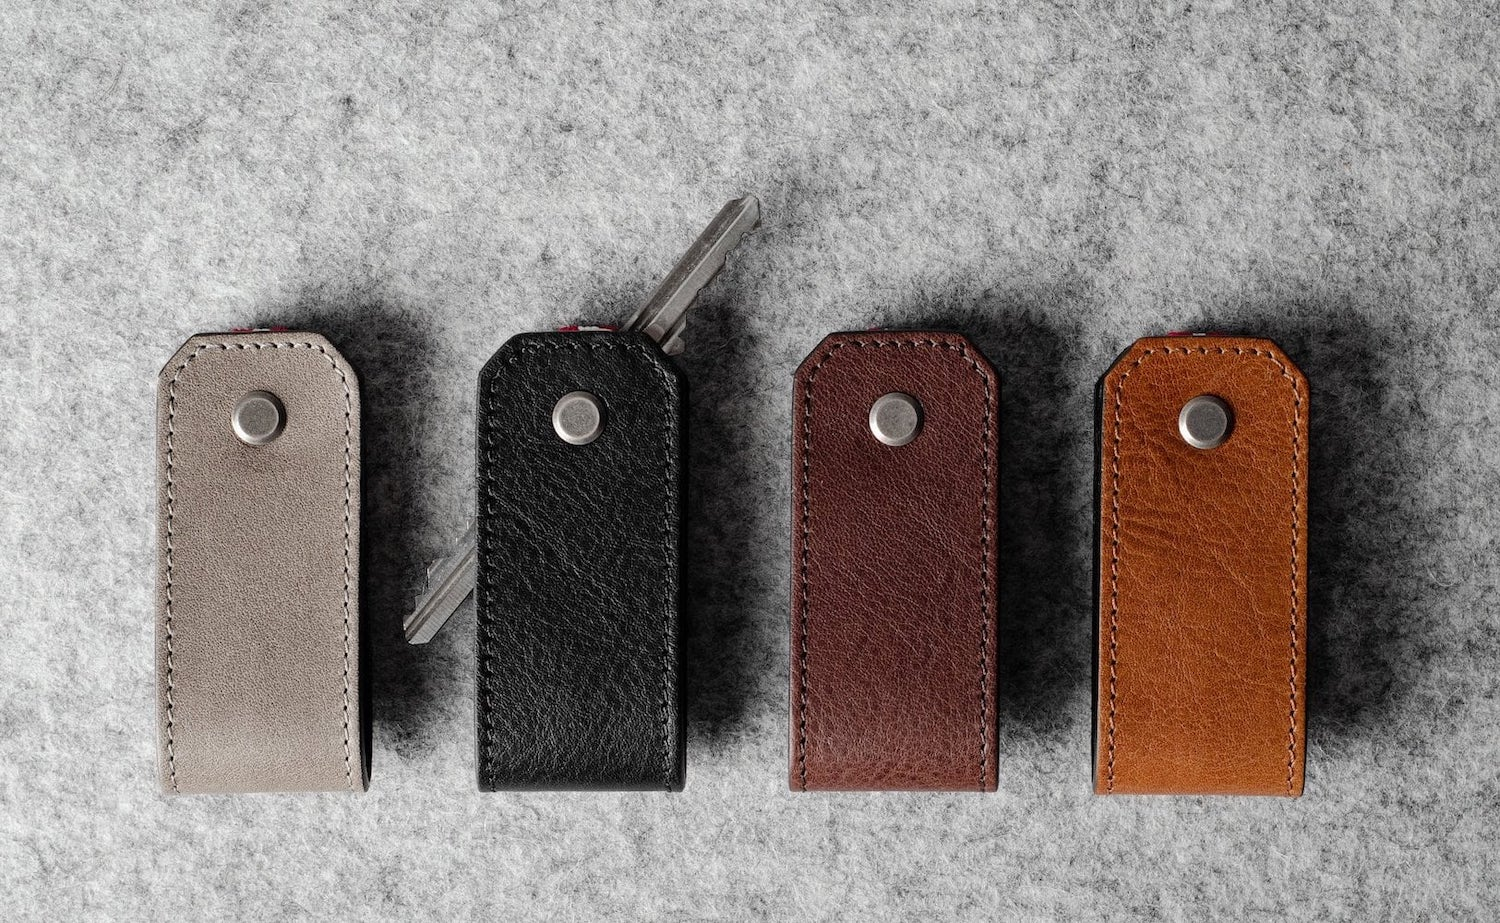 Four of the leather holders, one of which has two keys poking out of it